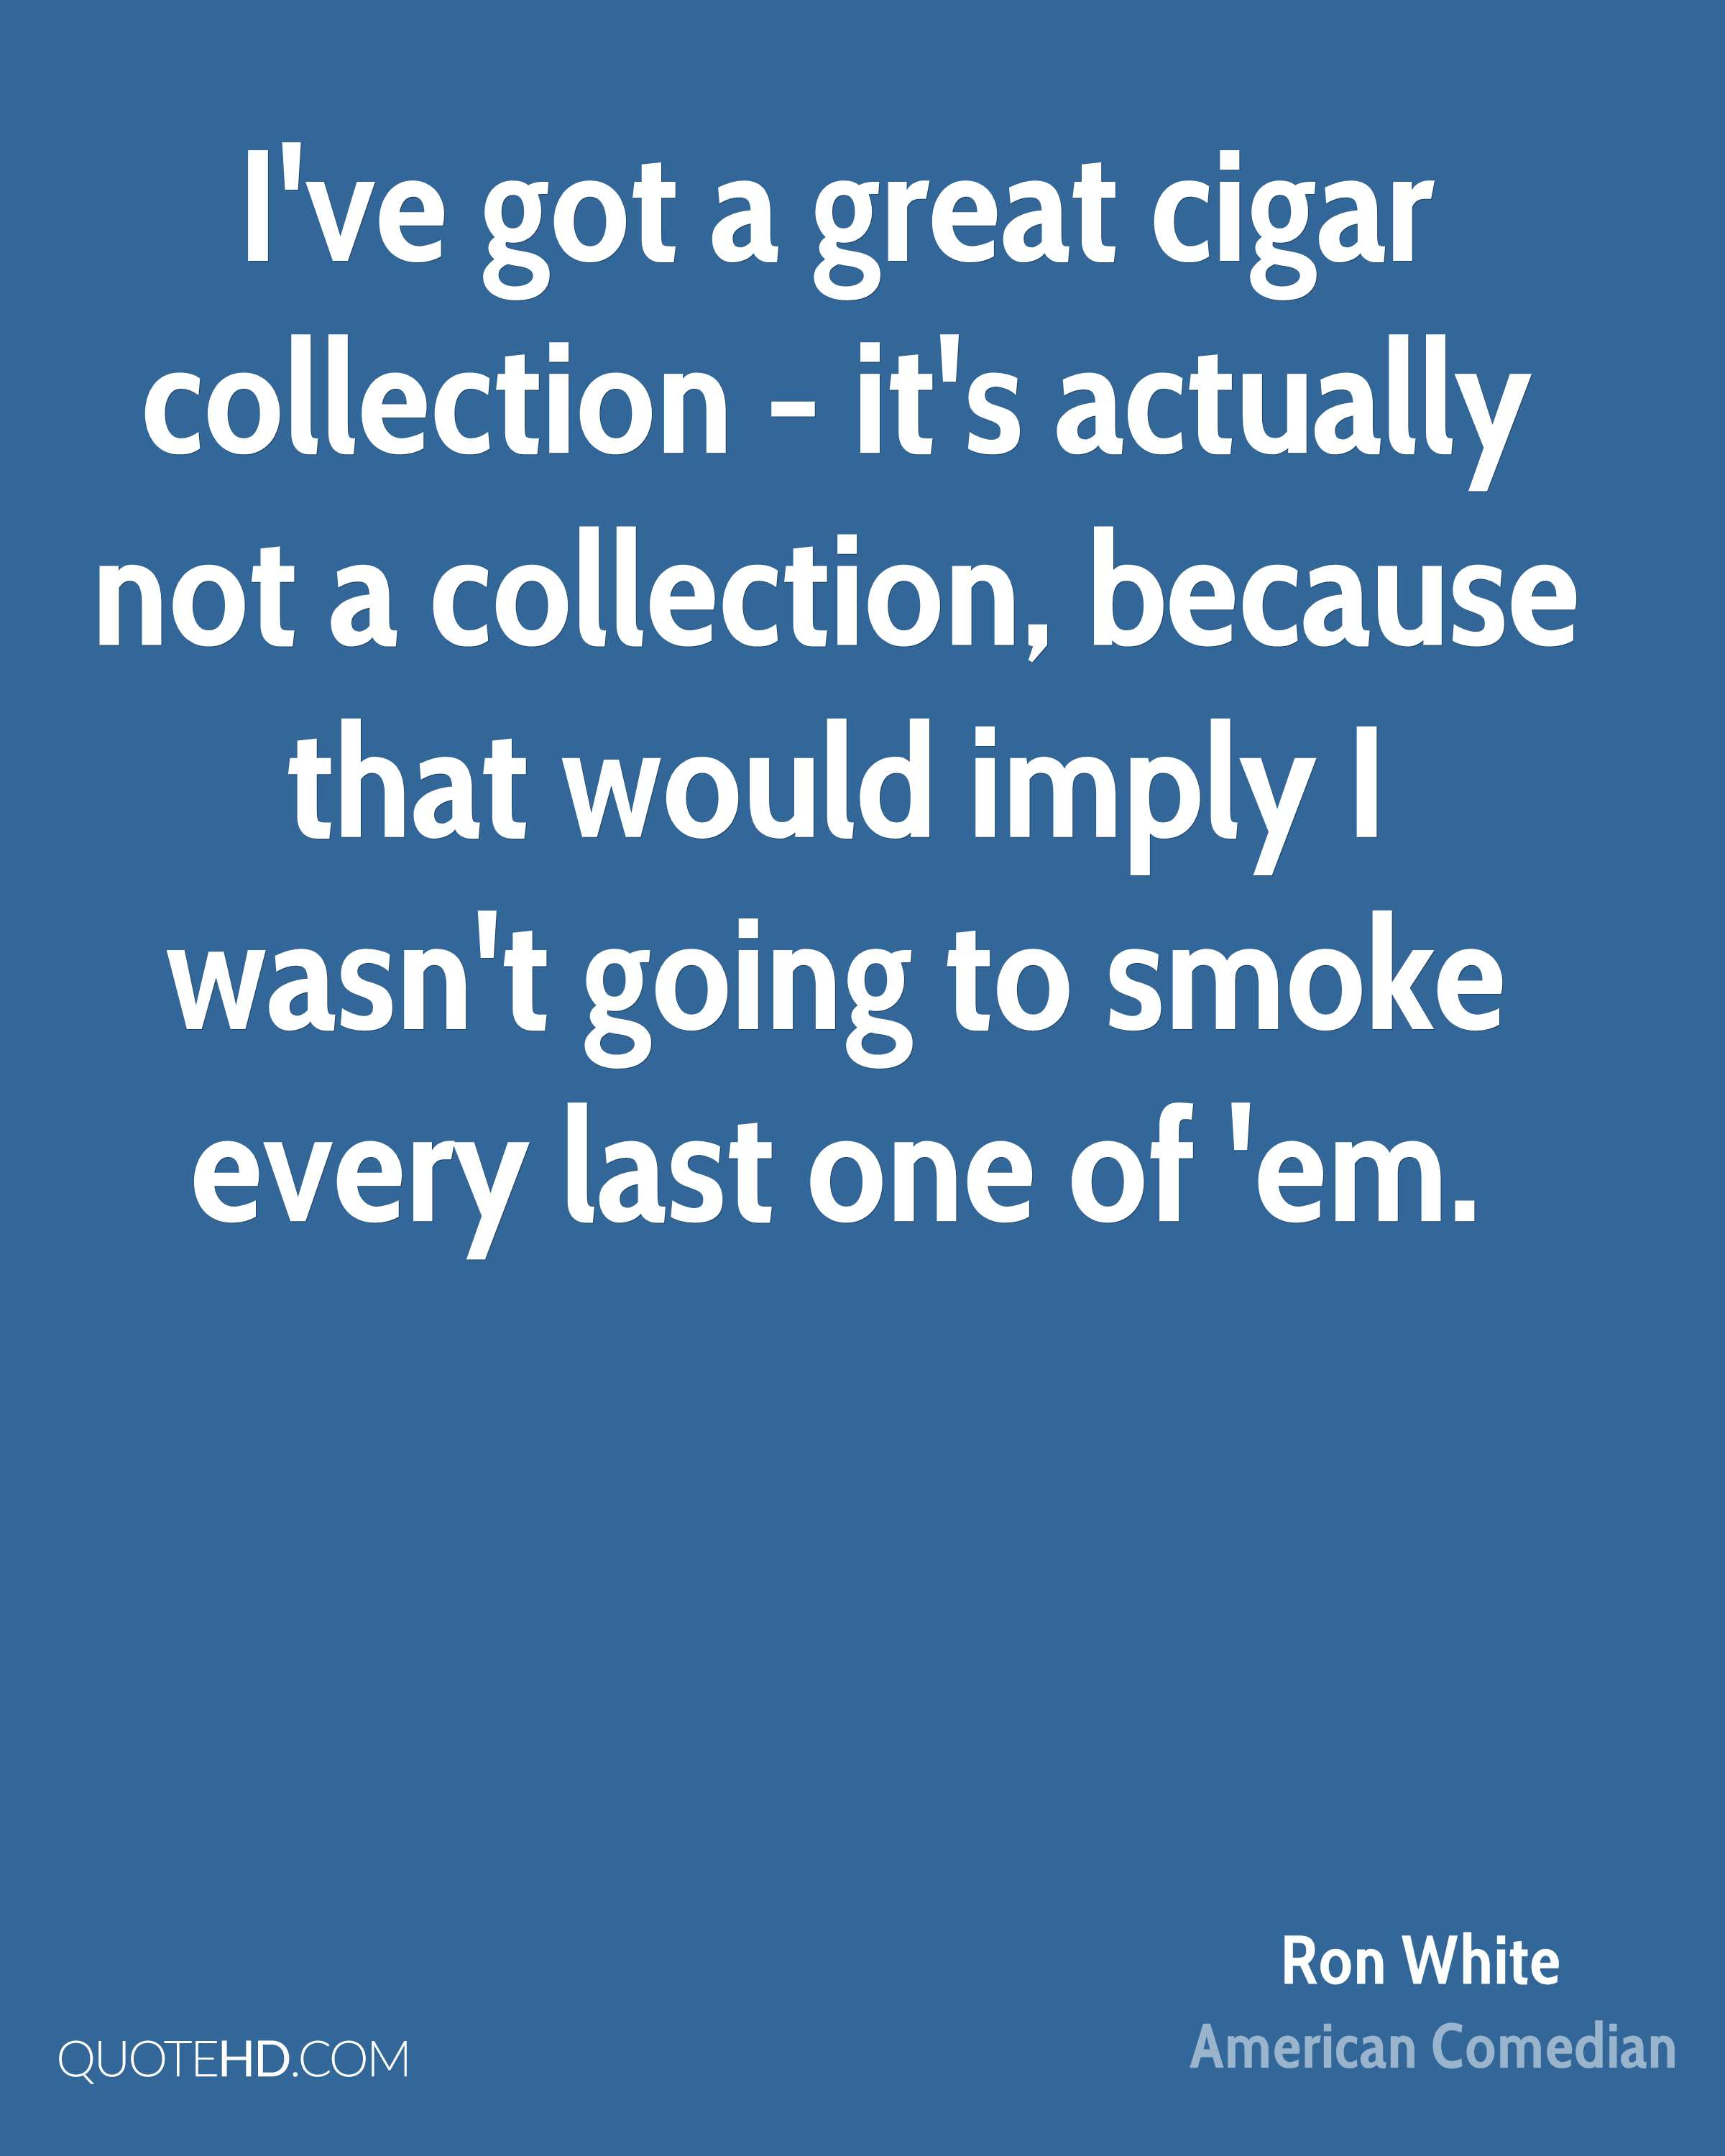 I've got a great cigar collection - it's actually not a collection, because that would imply I wasn't going to smoke every last one of 'em.